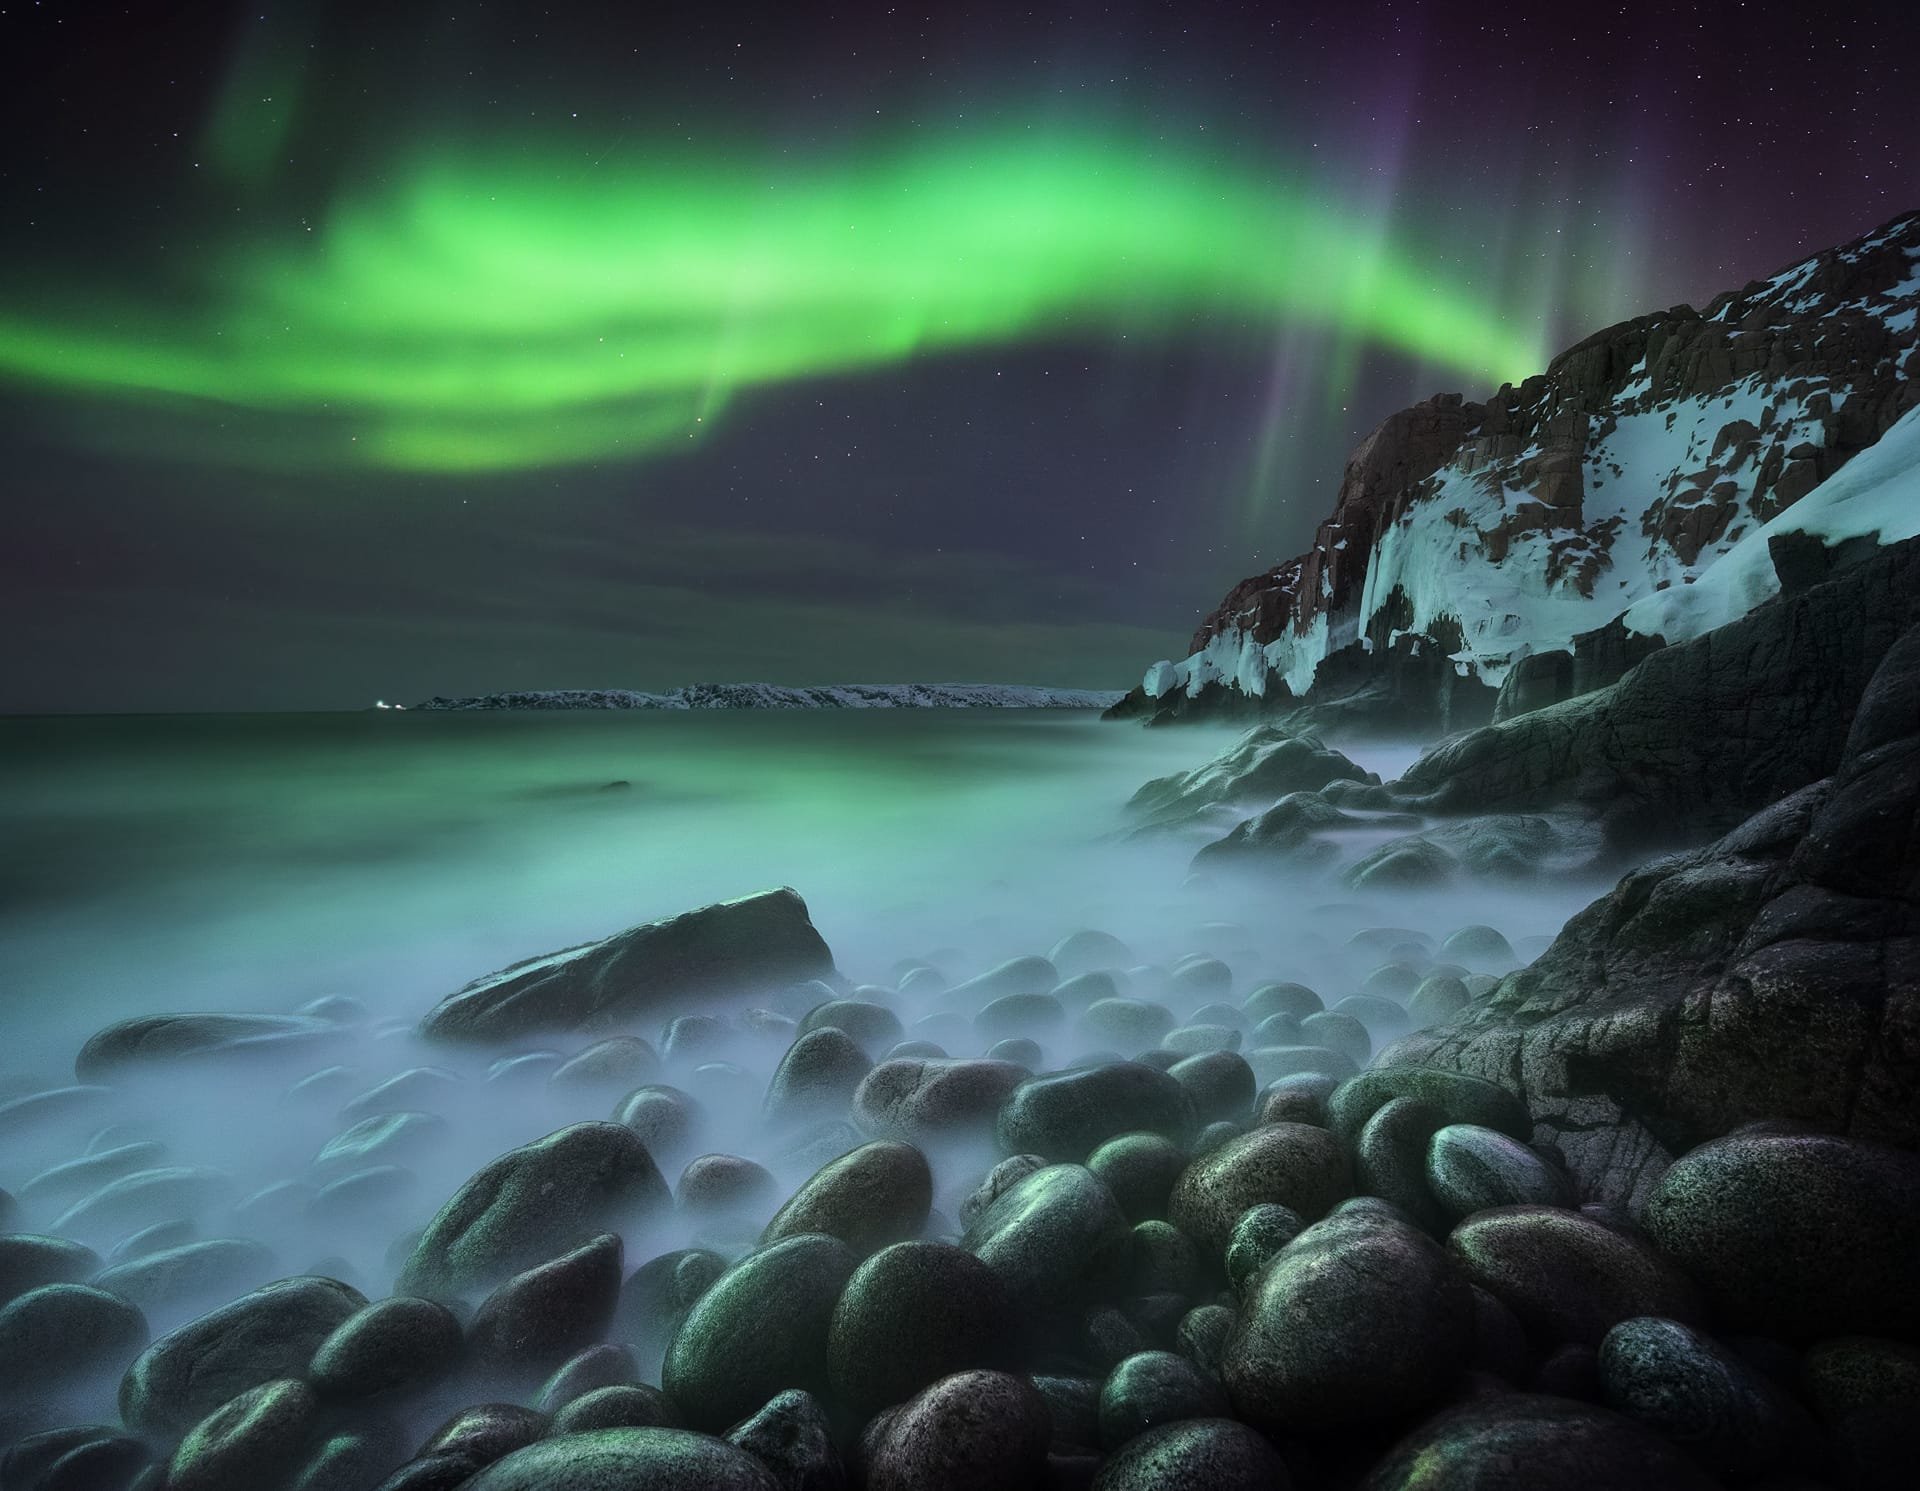 Northern lights photographer